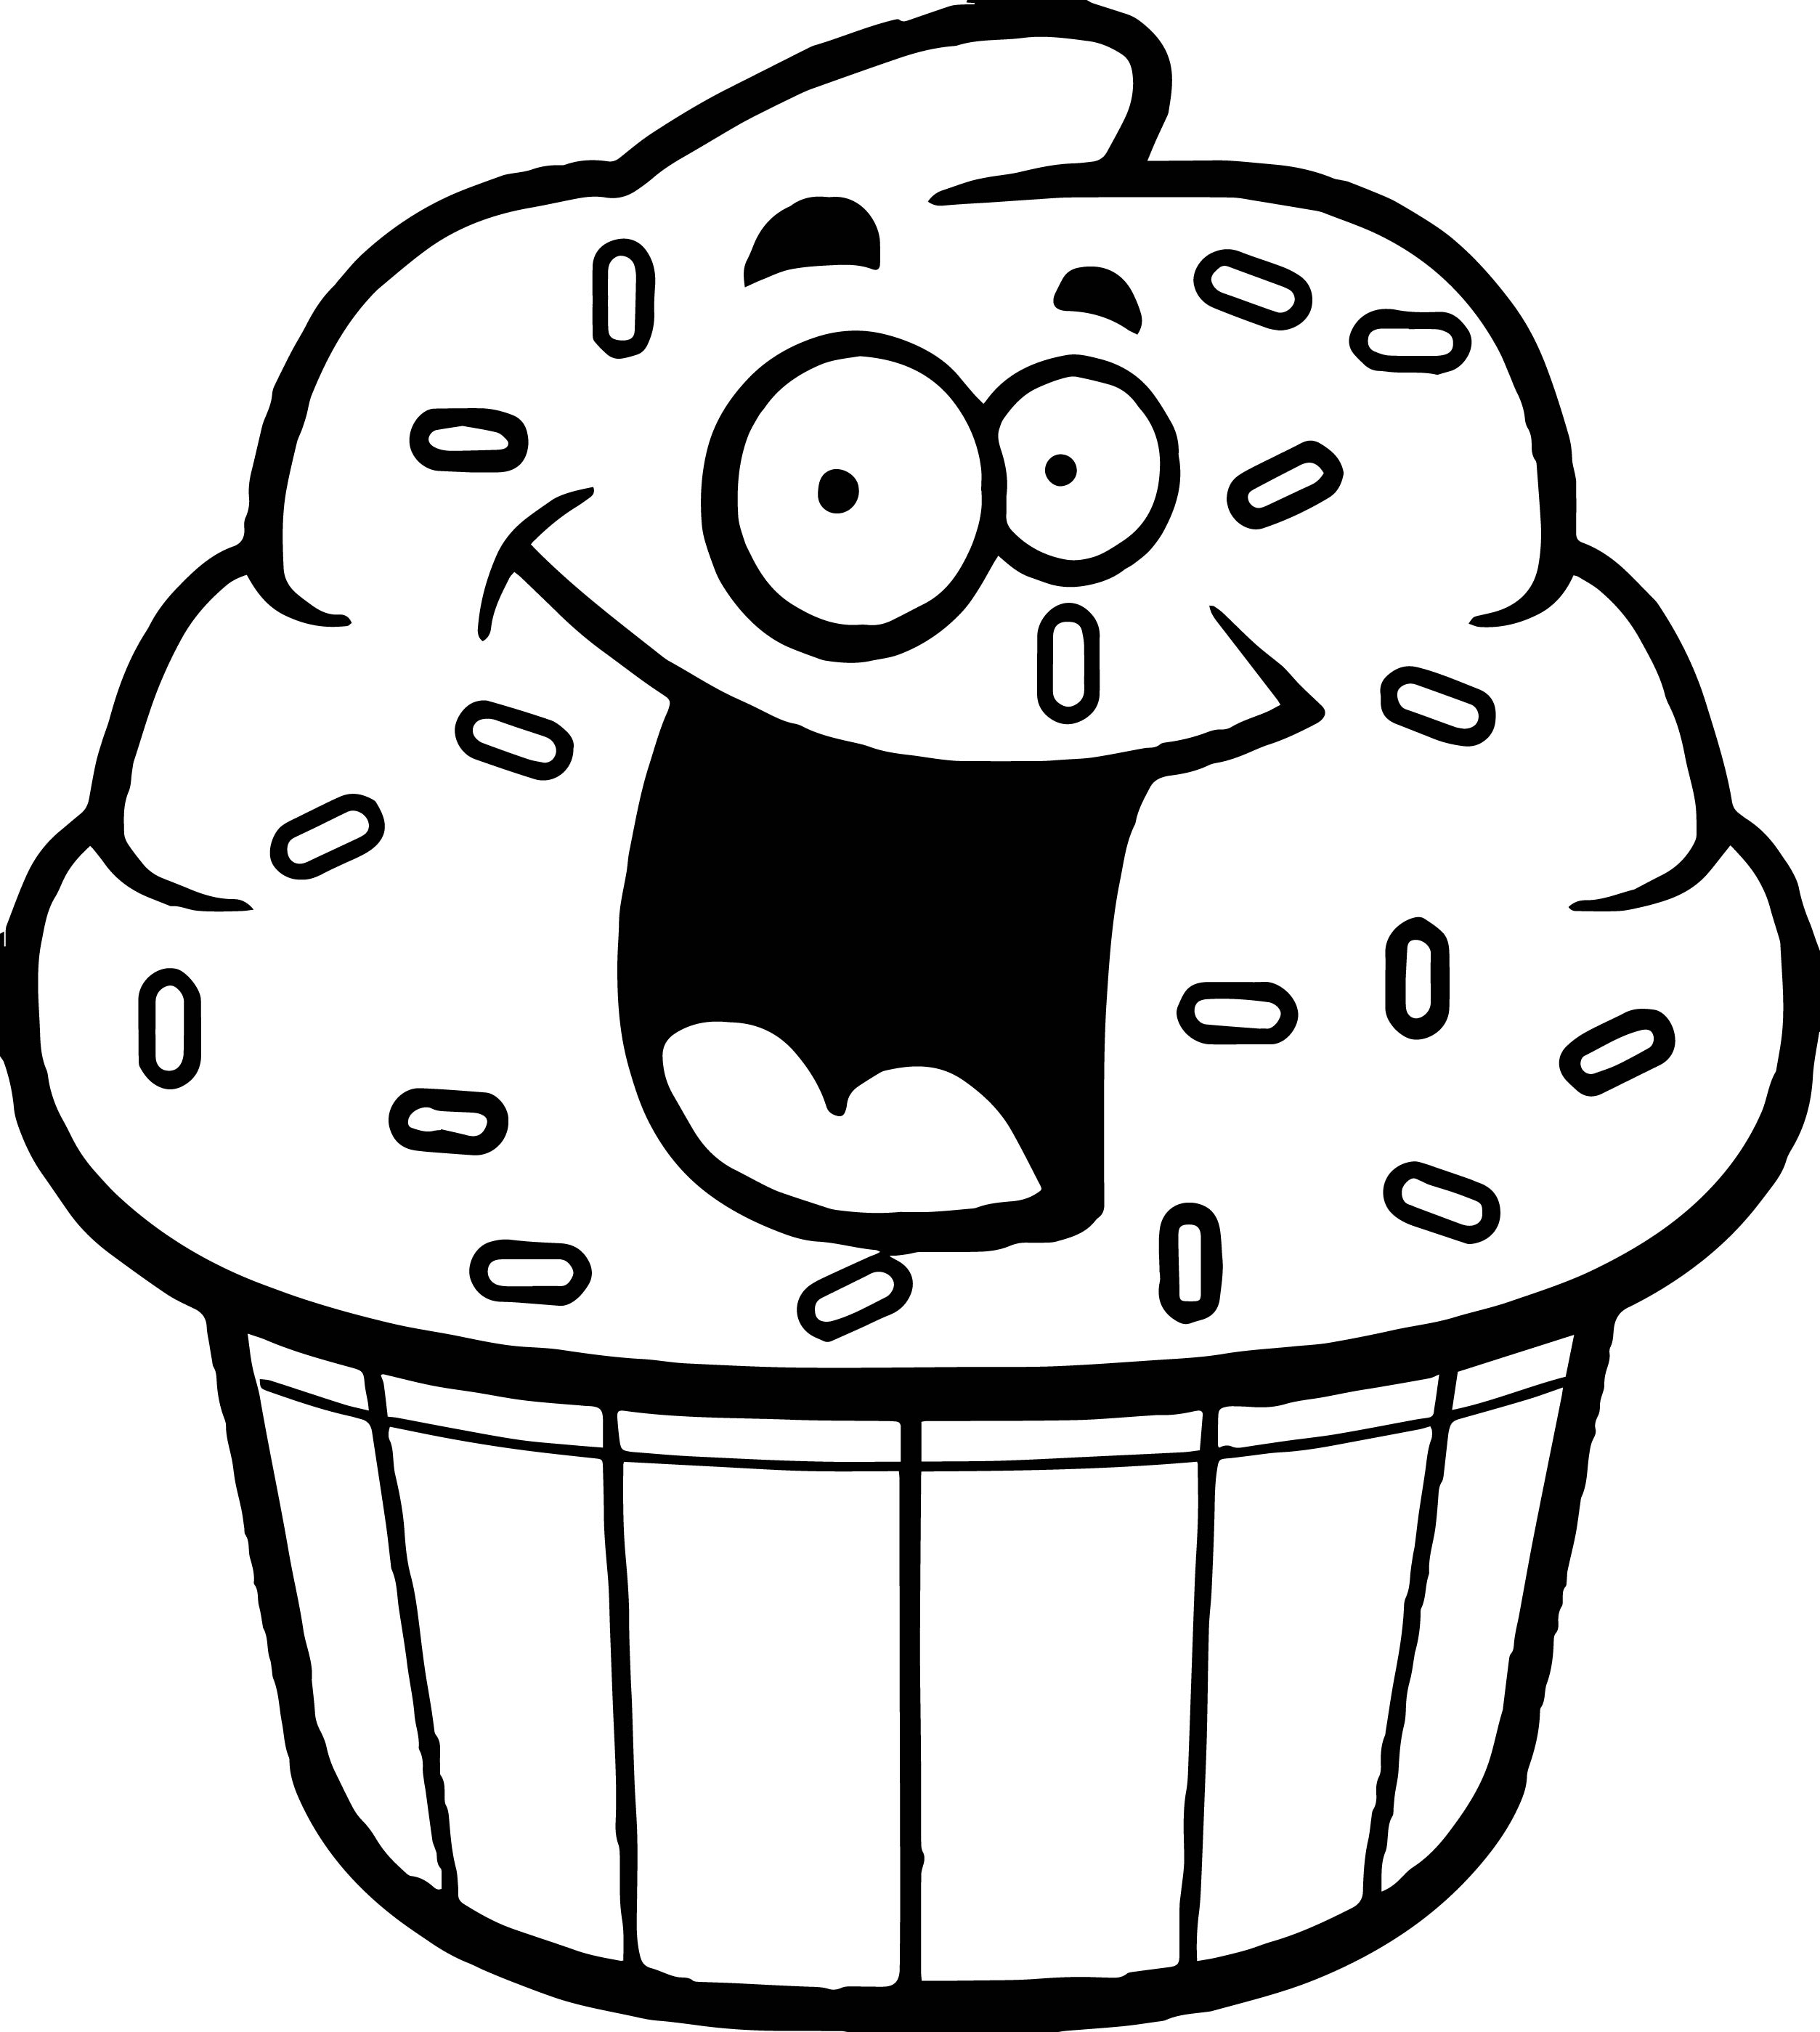 Amazing Cartoon Cupcake Coloring Page Outline Black White